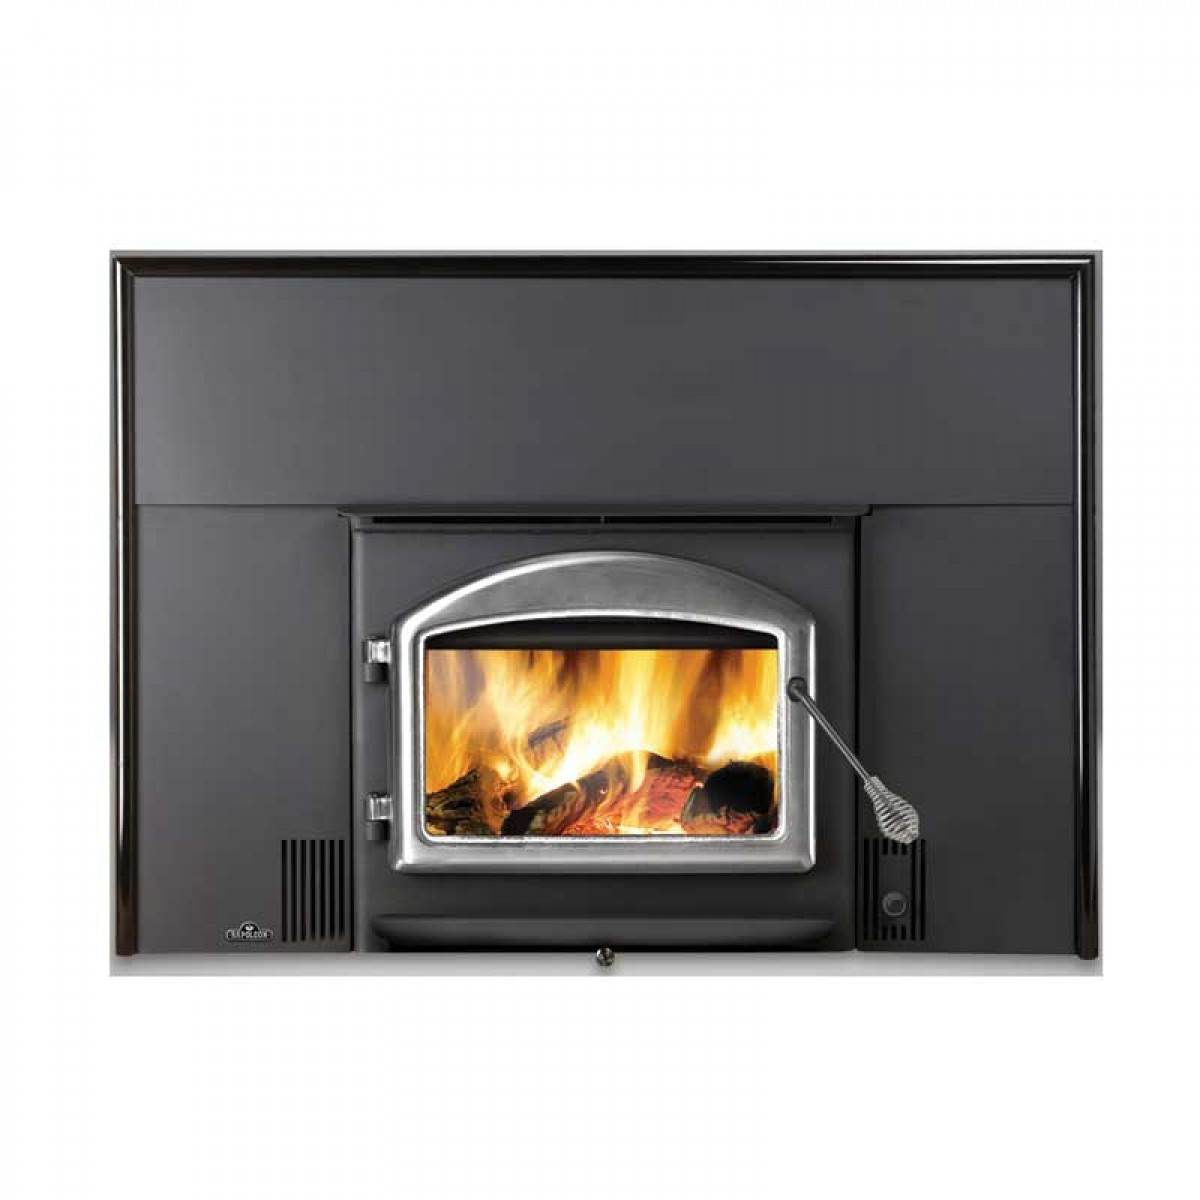 Wood cook stoves in Canada! Our selection of 20 elegant, efficient, and budget-friendly Italian & Spanish cook stoves will make you realize that a wood burning cook stove is not